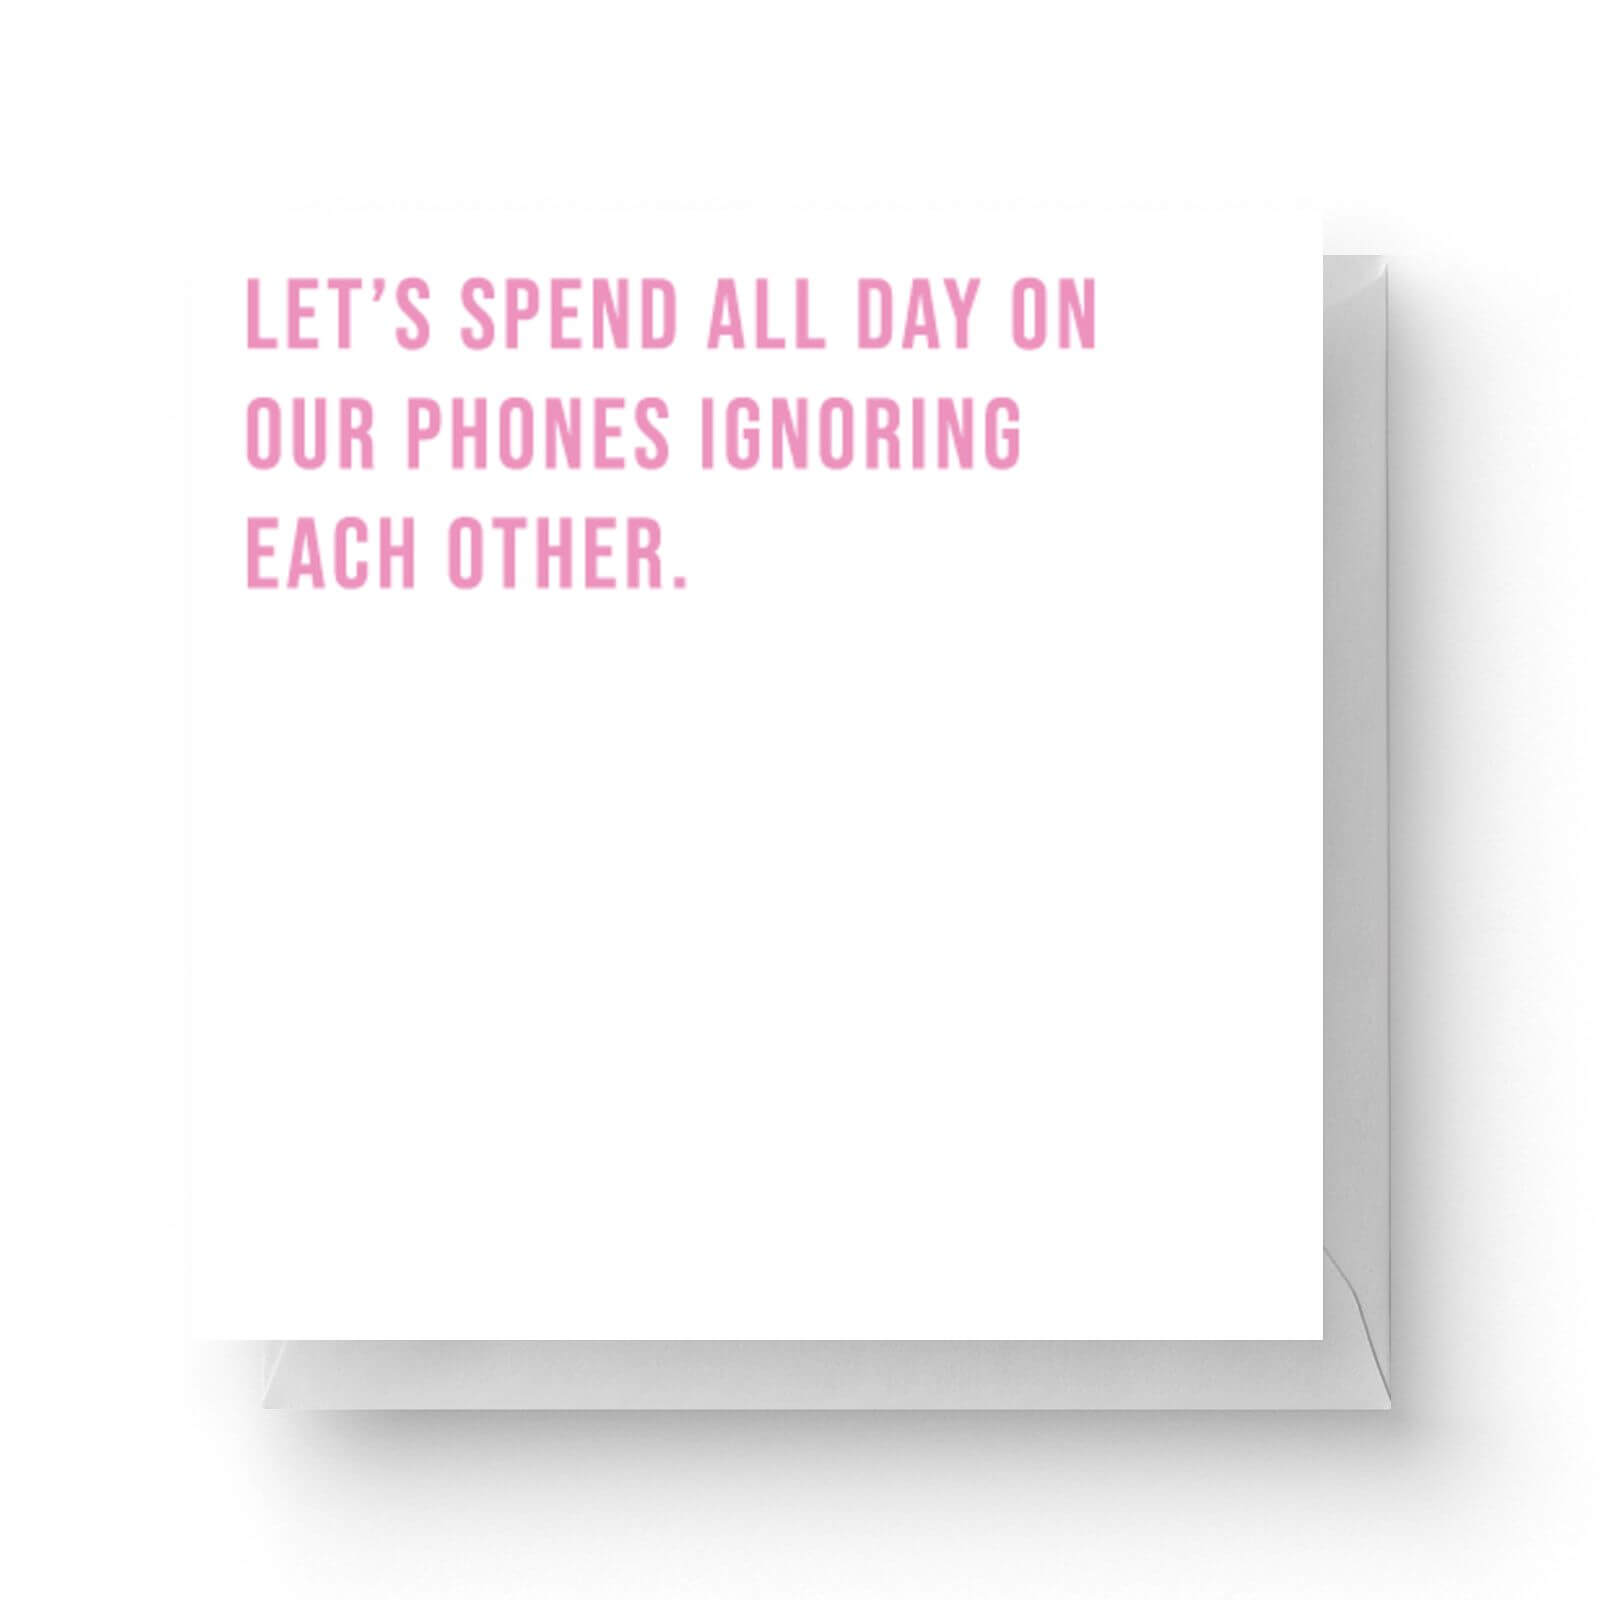 Image of Let's Spend All Day On Our Phones Ignoring Each Other Square Greetings Card (14.8cm x 14.8cm)